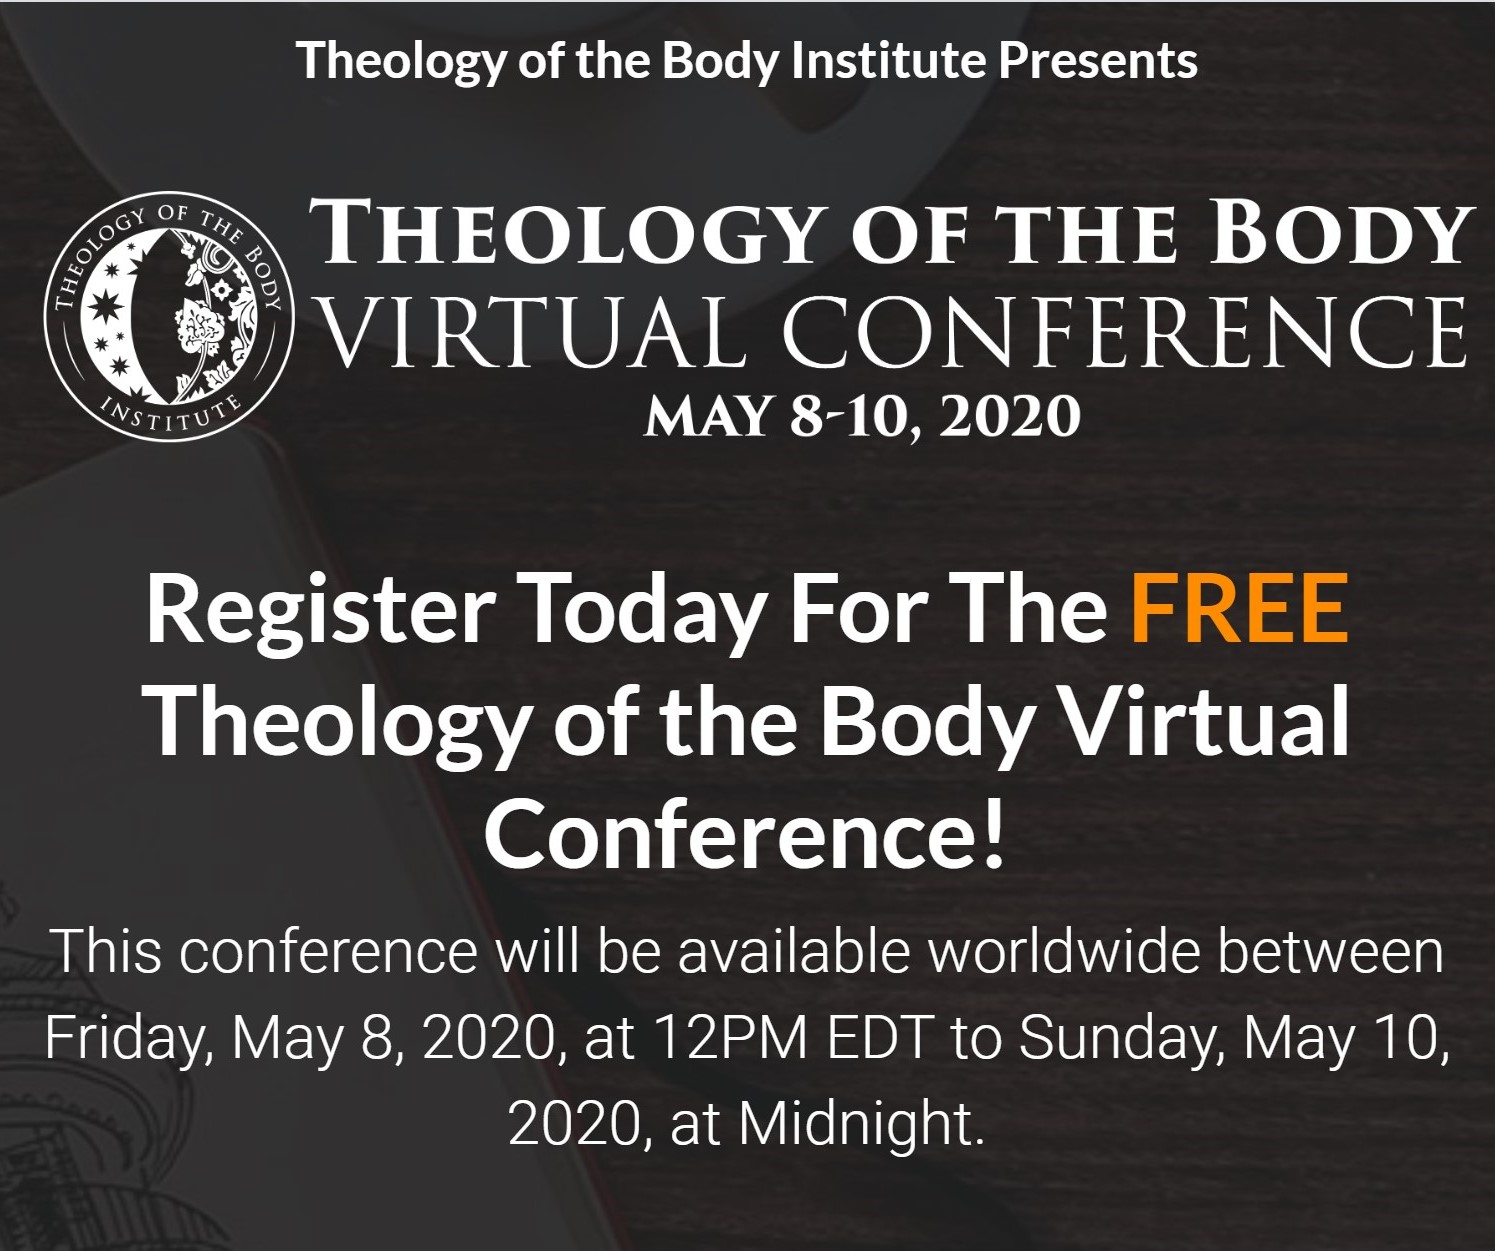 Theology of the Body Virtual Conference